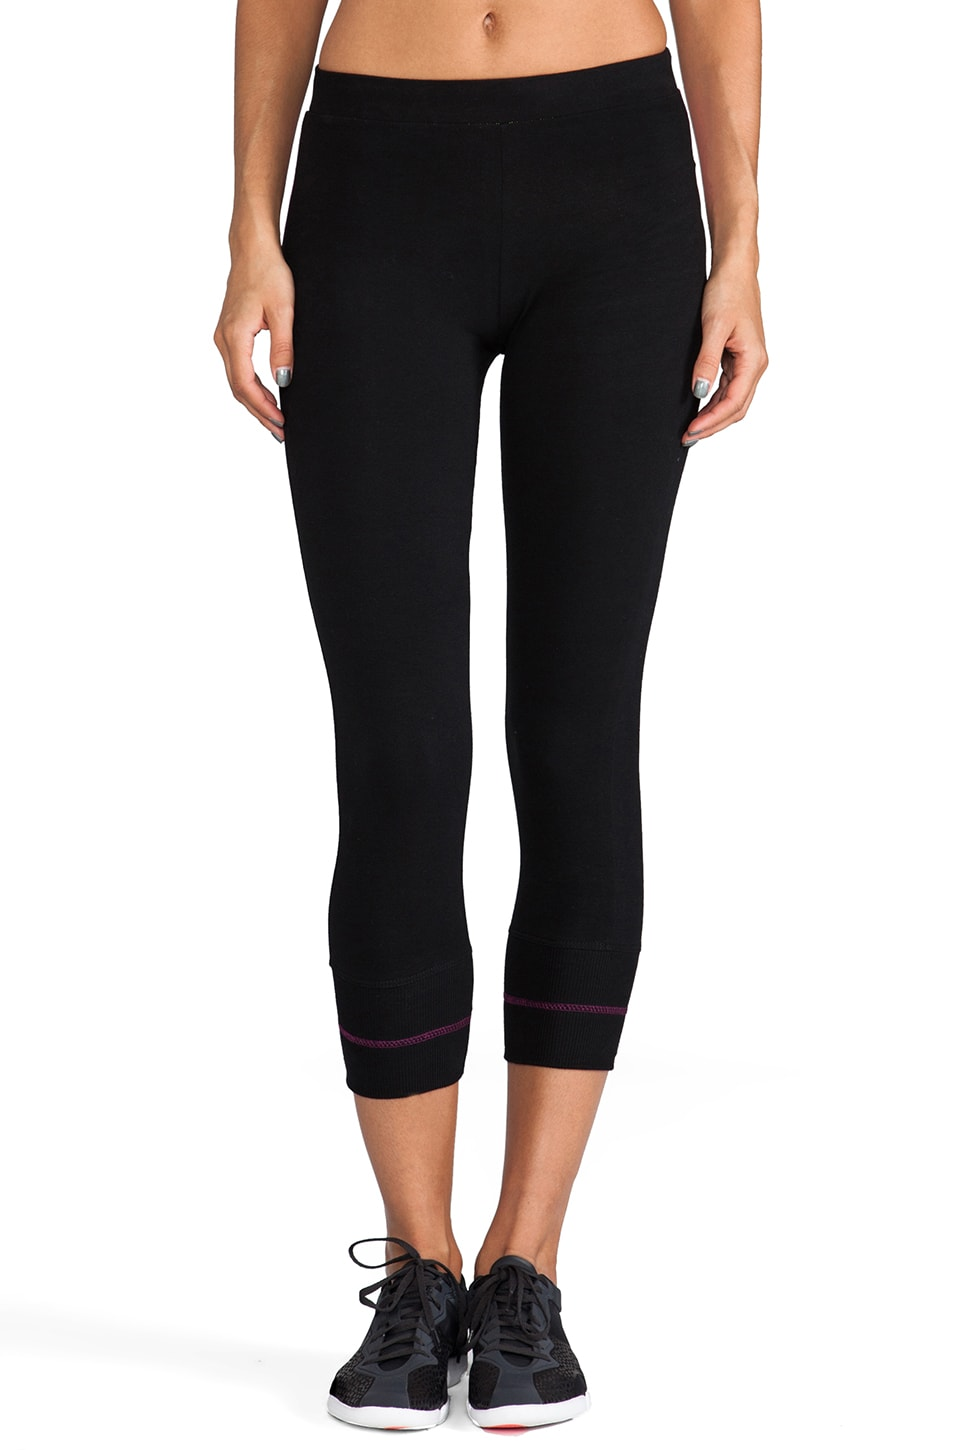 SOLOW 90/10 Crop Contrast Legging in Black/Flora/Hibiscus